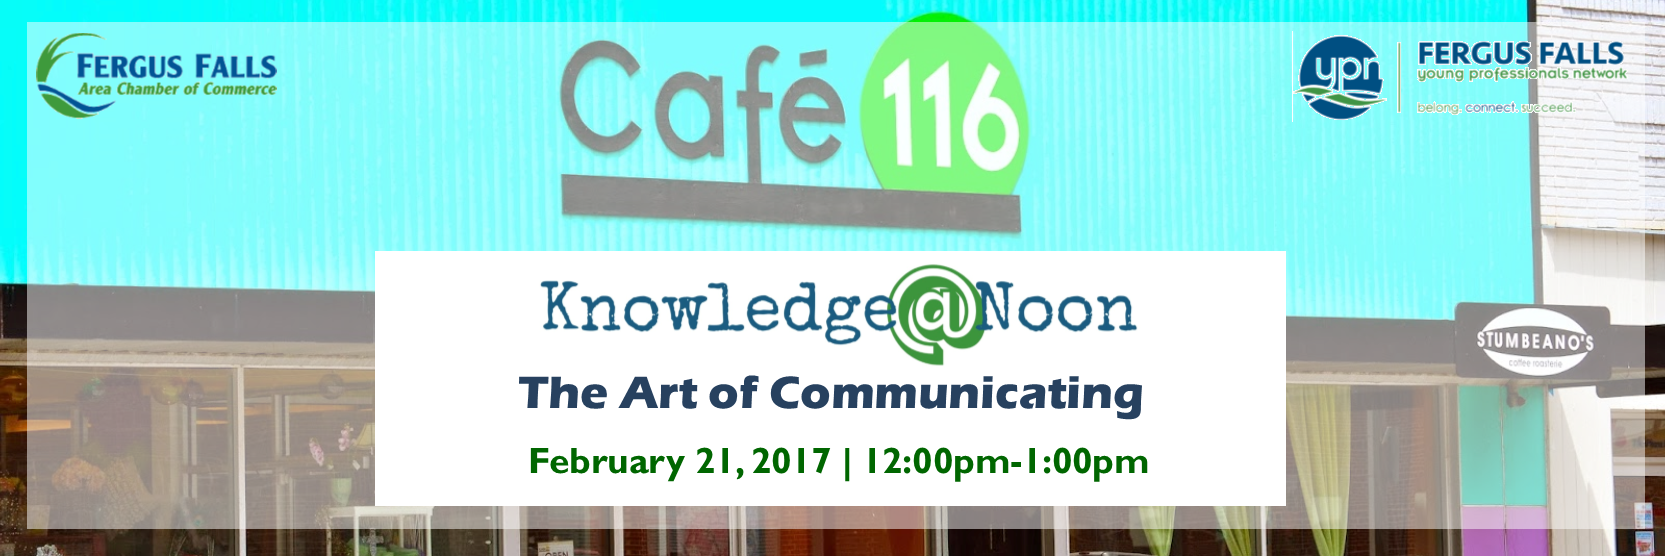 KnowledgeatNoon---February-2018---Art-of-Communicating.png